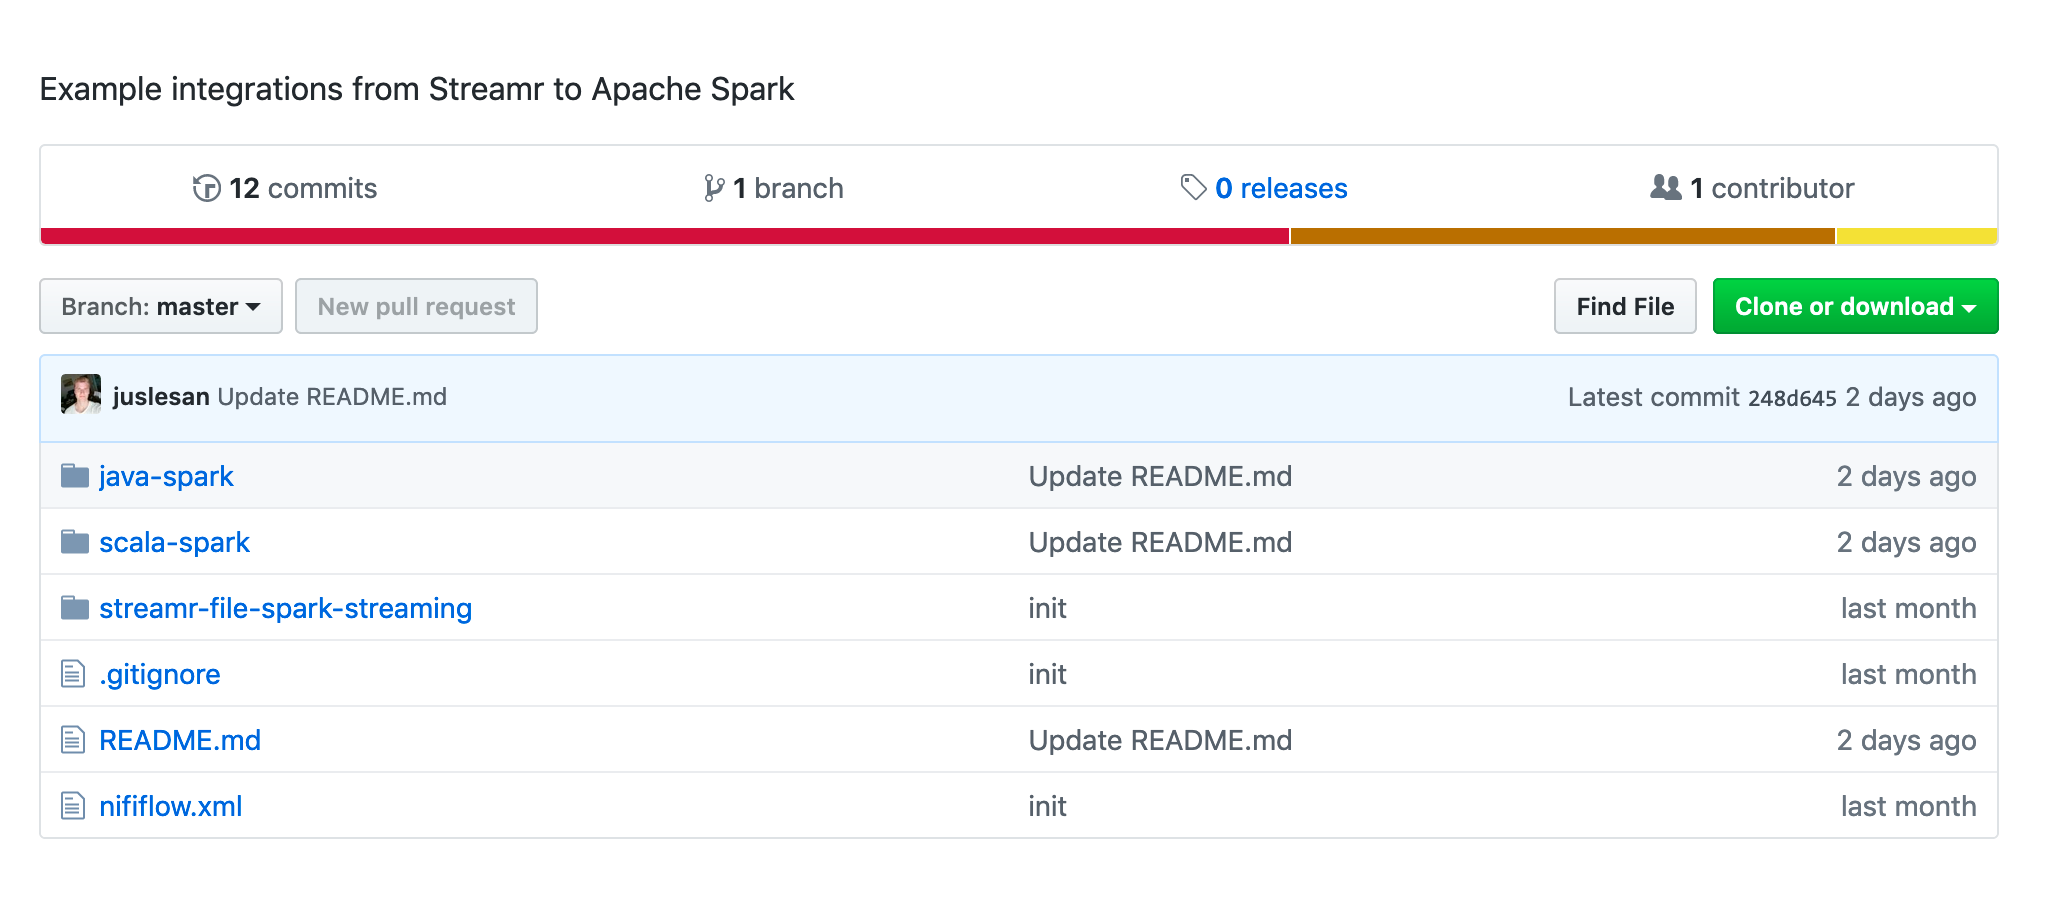 Integrating Streamr with Apache Spark - News from Streamr